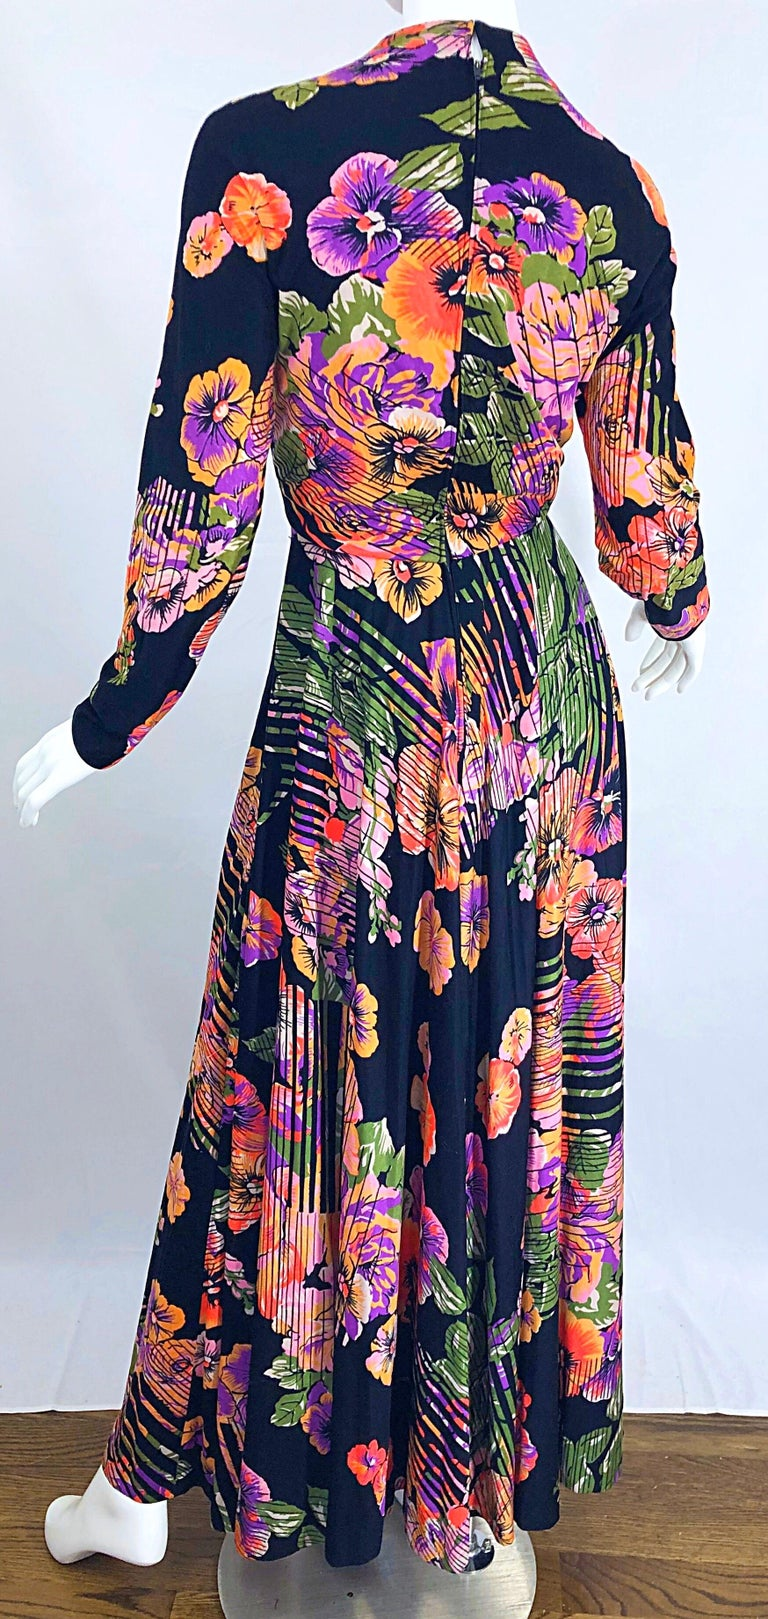 Geoffrey Beene 1970s Abstract Flower Print Long Sleeve High Neck 70s Maxi Dress For Sale 4